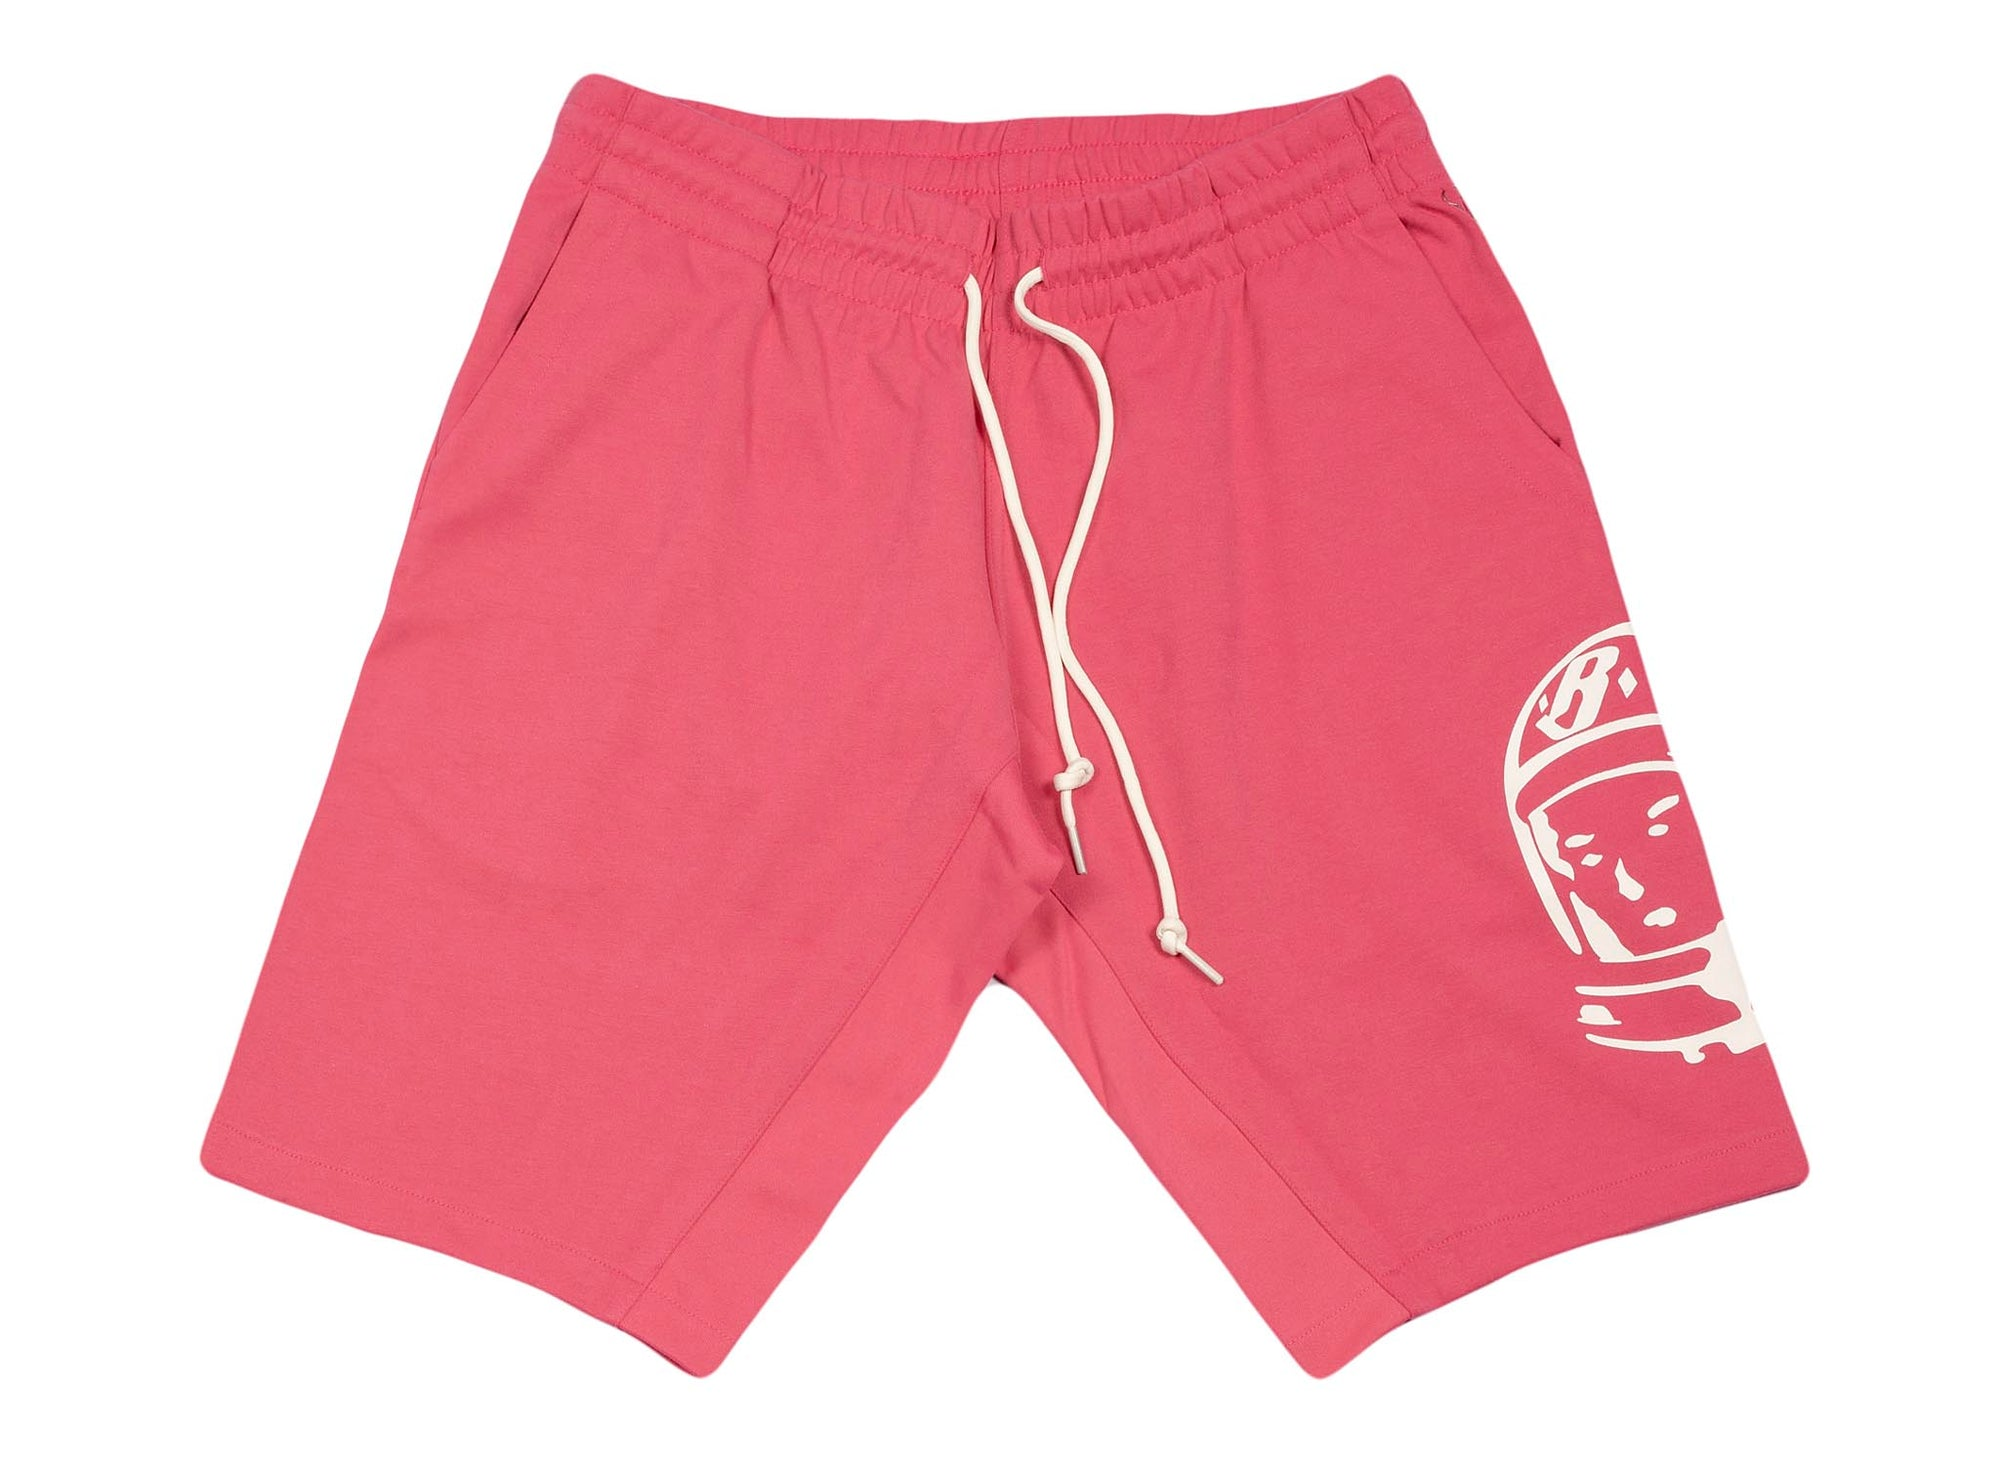 BBC BILLIONAIRE BOYS CLUB HELMET SHORT